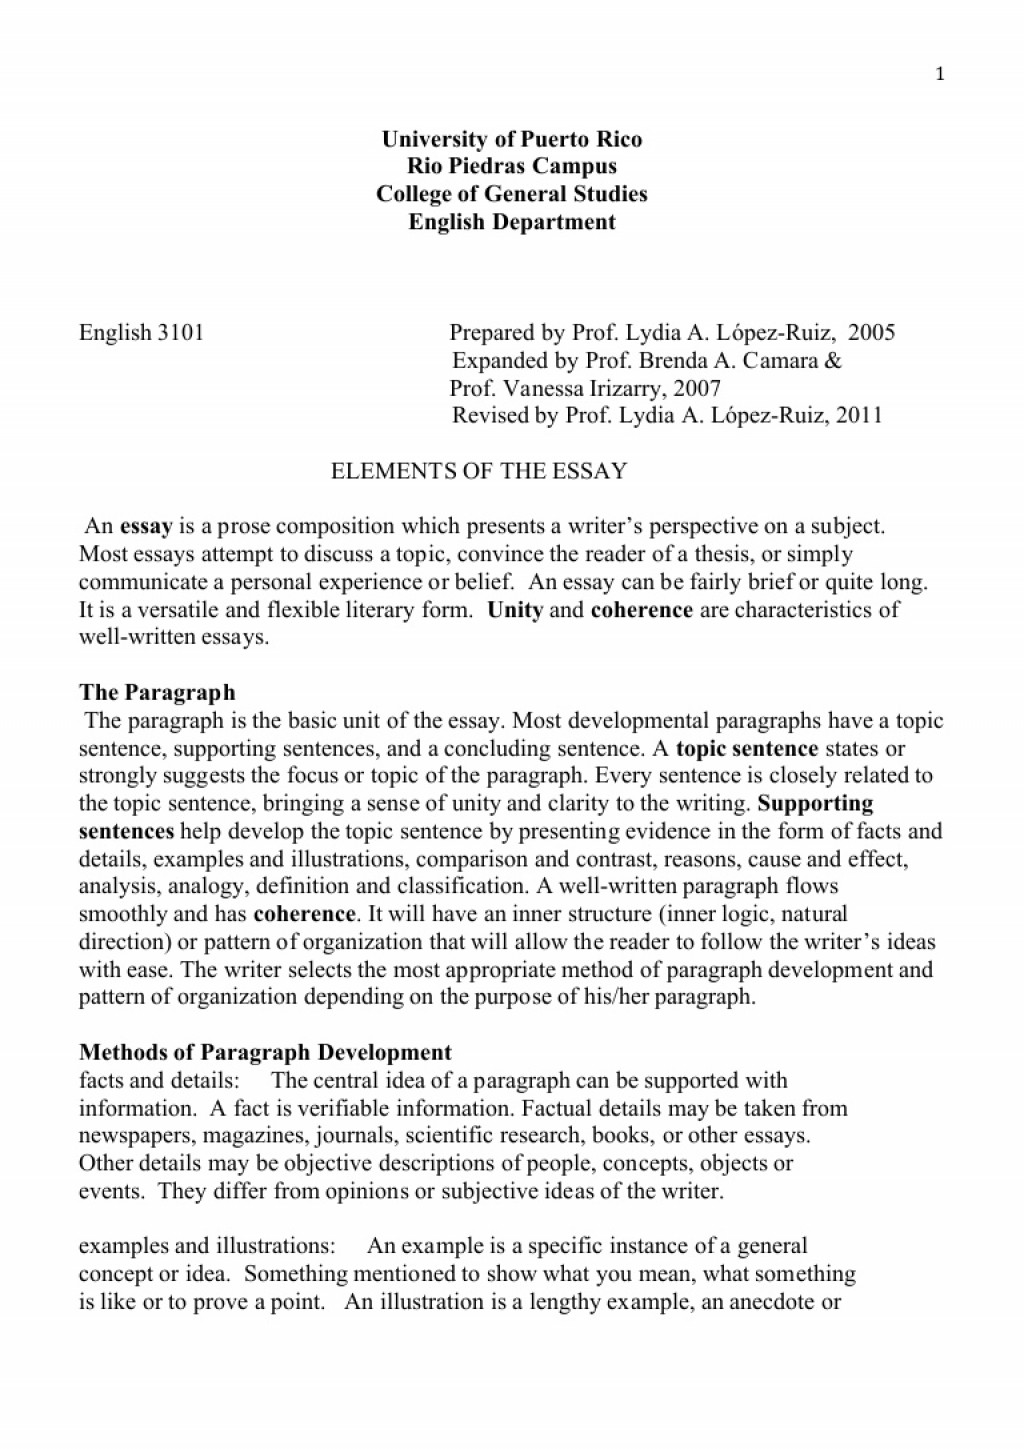 015 Health Essay Ll Vi Elementsoftheessay Phpapp01 Thumbnail Singular Topics For High School Students Titles Writing In Telugu Large